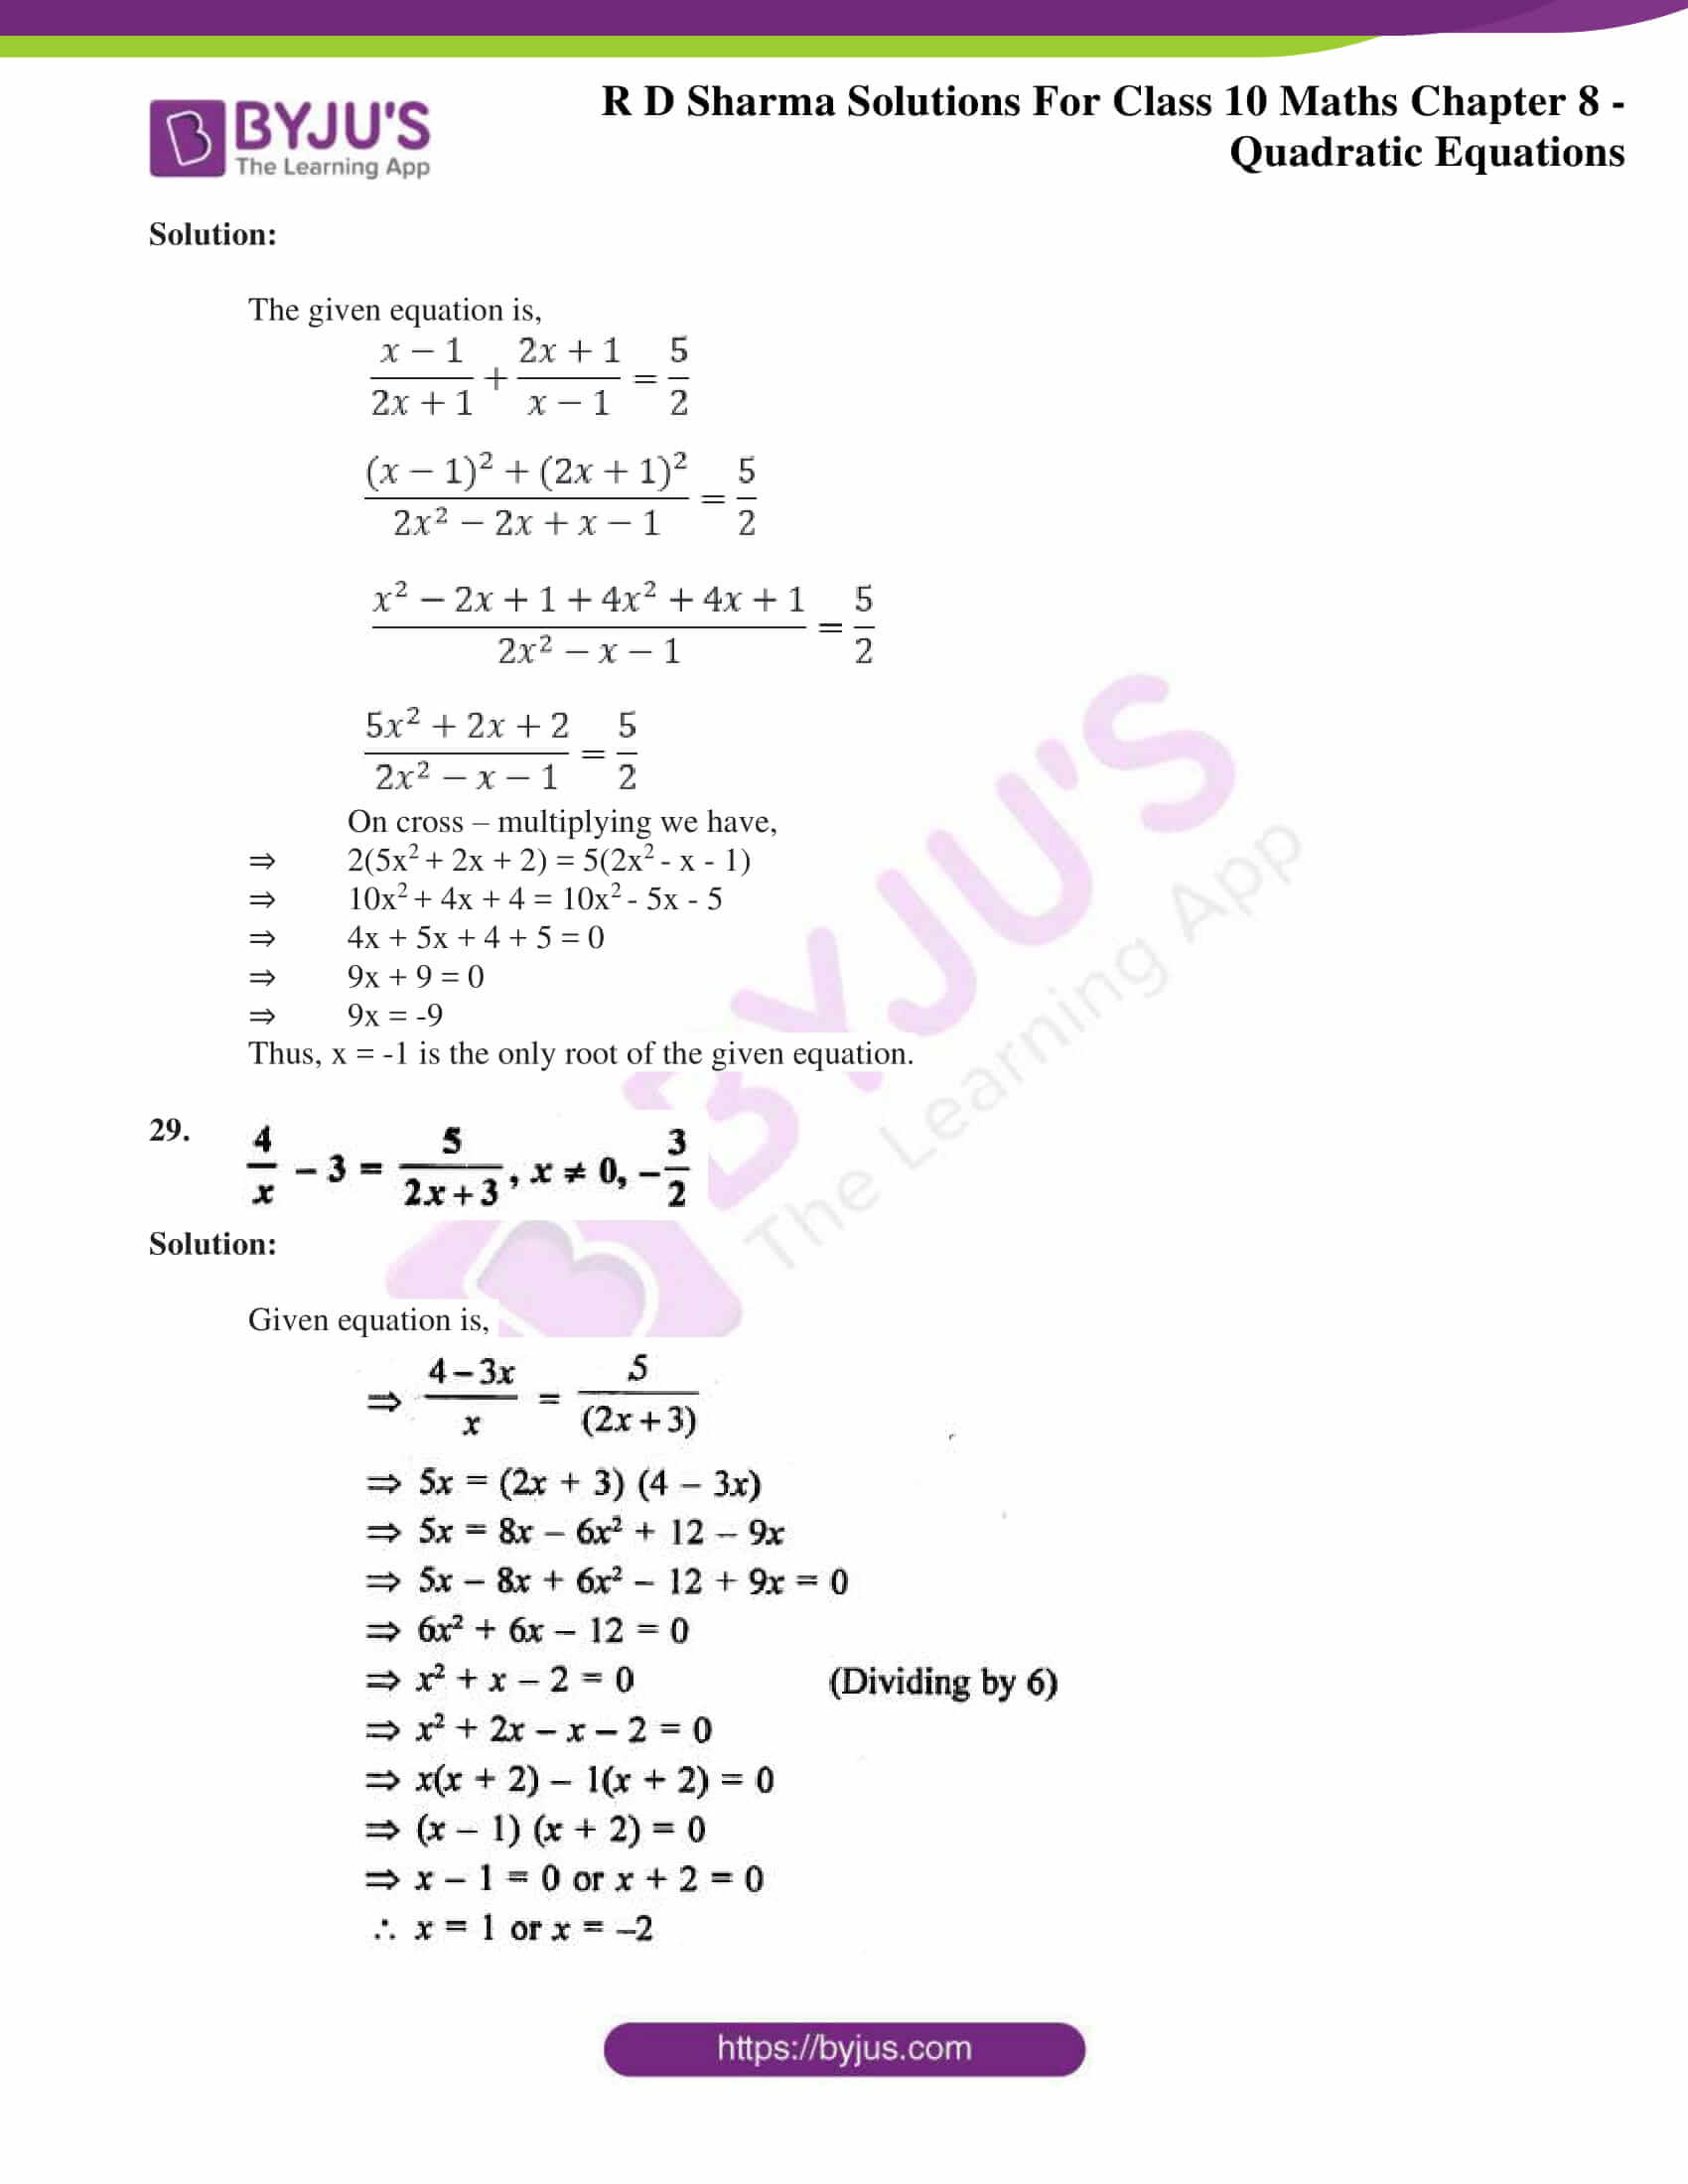 RD Sharma Solutions for Class 10 Chapter 8 Quadratic Equations 22